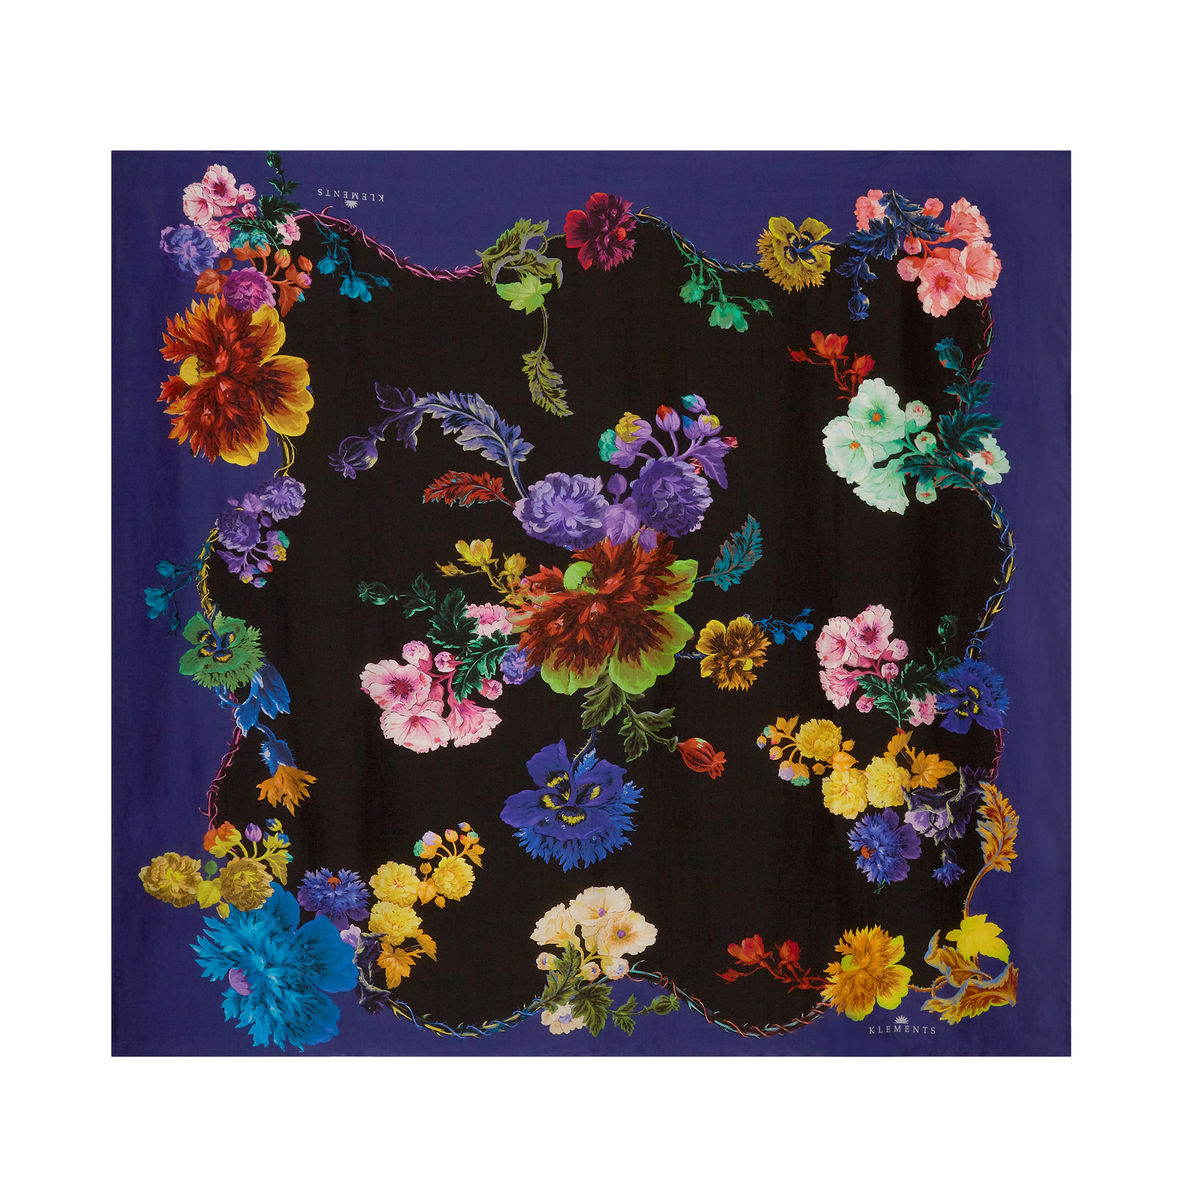 Medium scarf in Gothic Floral Black Base / Rainbows print - product images  of